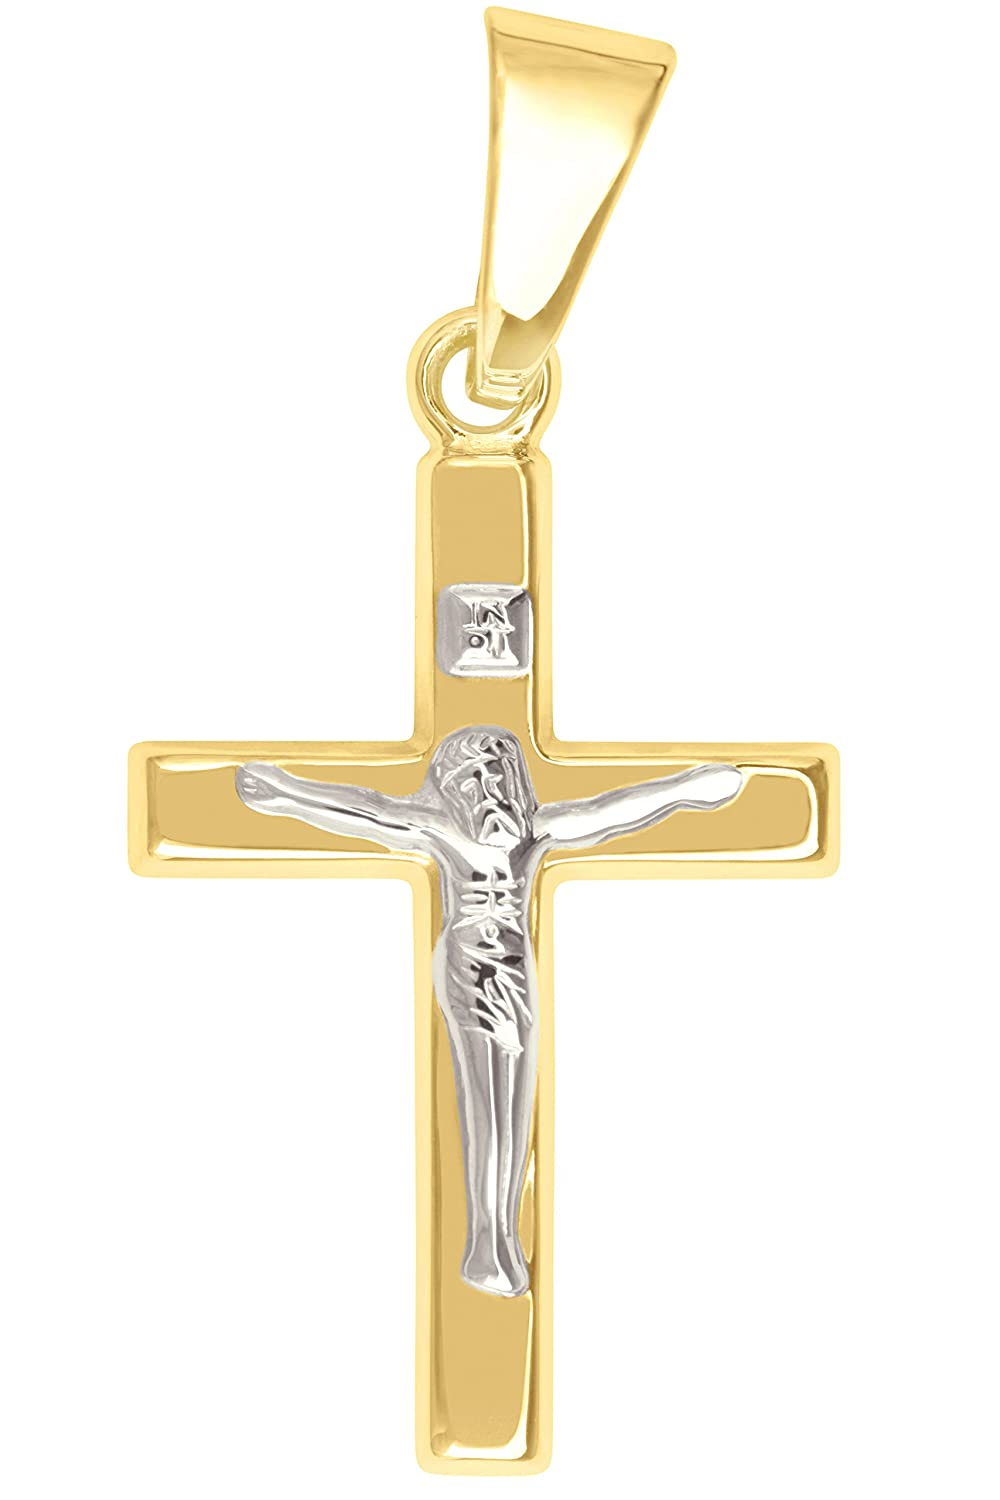 MyGold Kreuz Anhänger (Ohne Kette) Gelbgold Weißgold Weissgold 375 / 750 Gold (9 Karat / 18 Karat) Bicolor 20mm x 10mm Korpus Jesus Taufe Taufgeschenk Taufpate Kommunion The very Best MOD-02212 V0012688